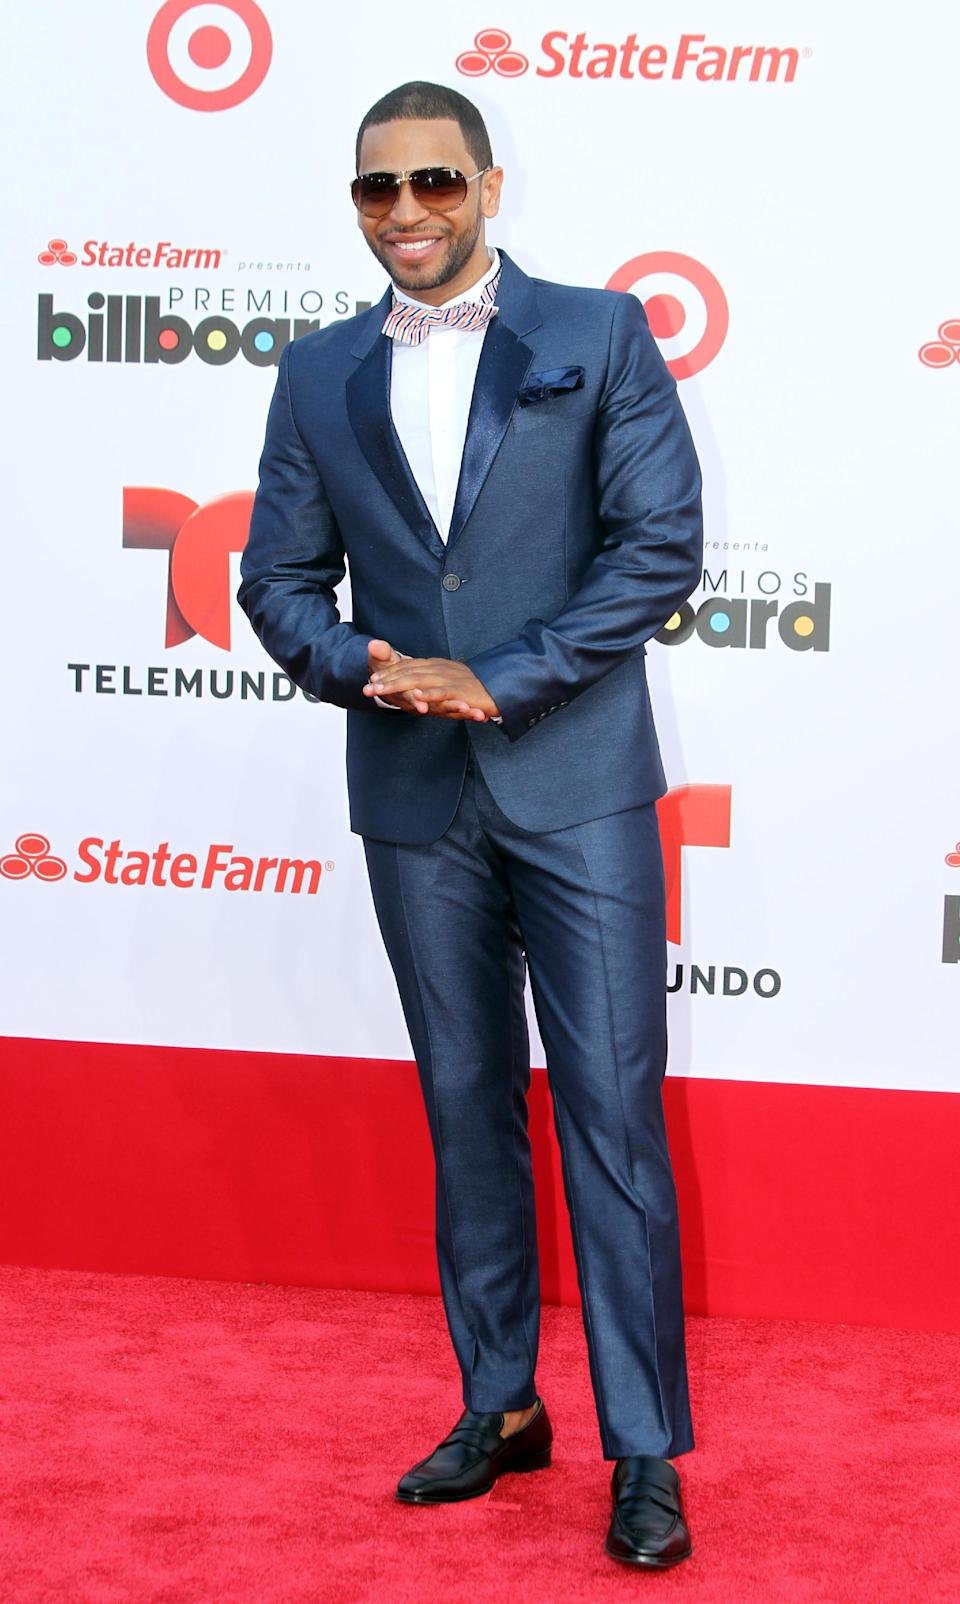 Dominican singer Henry Santos arrives at the Latin Billboard Awards in Coral Gables, Fla. Thursday, April 25, 2013. (Photo by Carlo Allegri/Invision/AP)